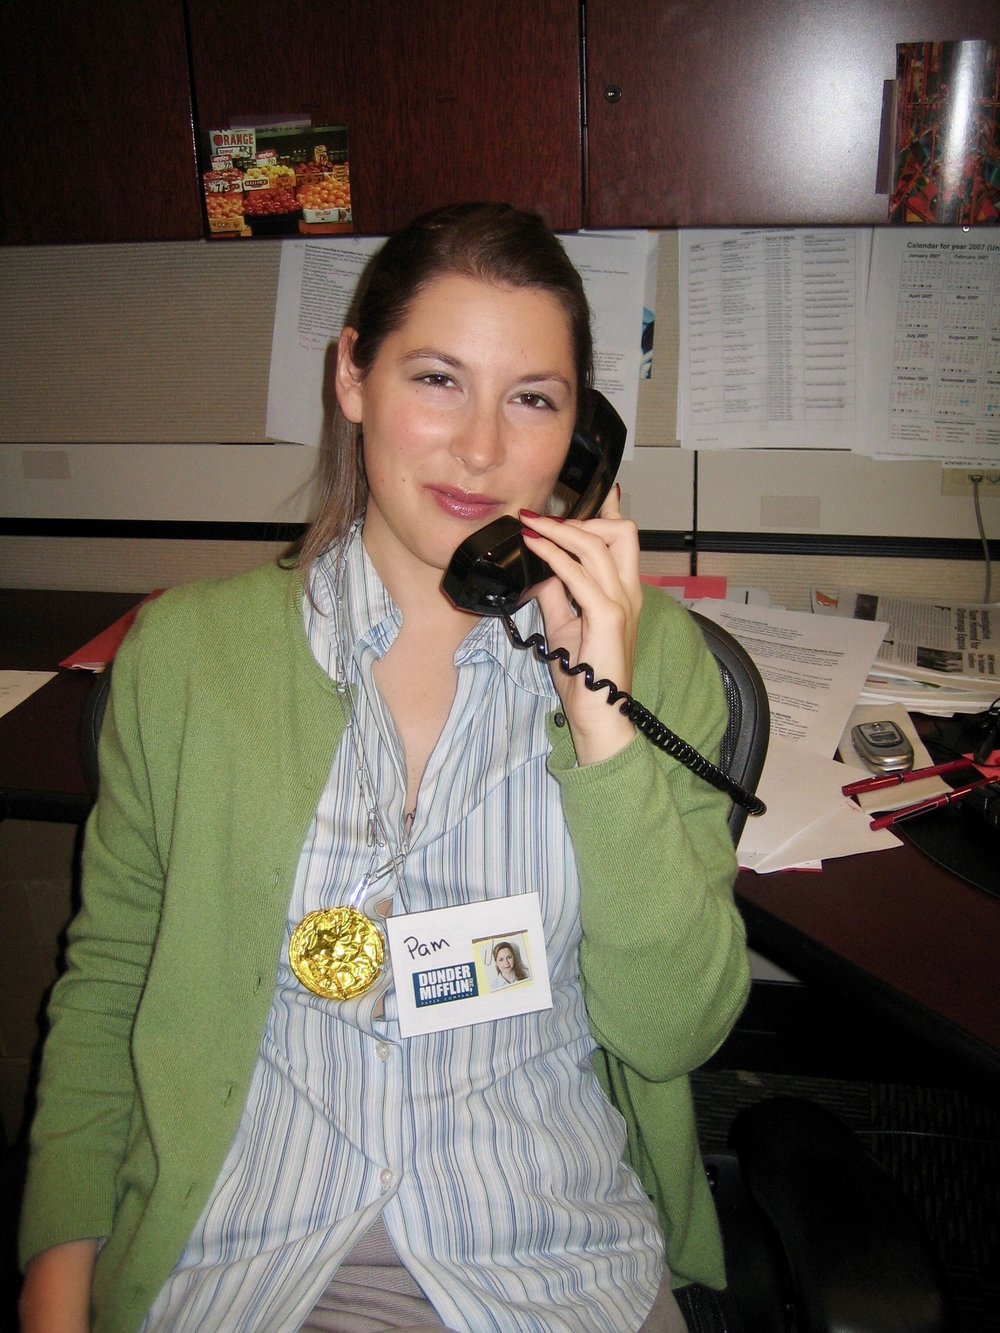 Me dressed up like Pam from The Office (American version). What do you think of my cell phone in the background??